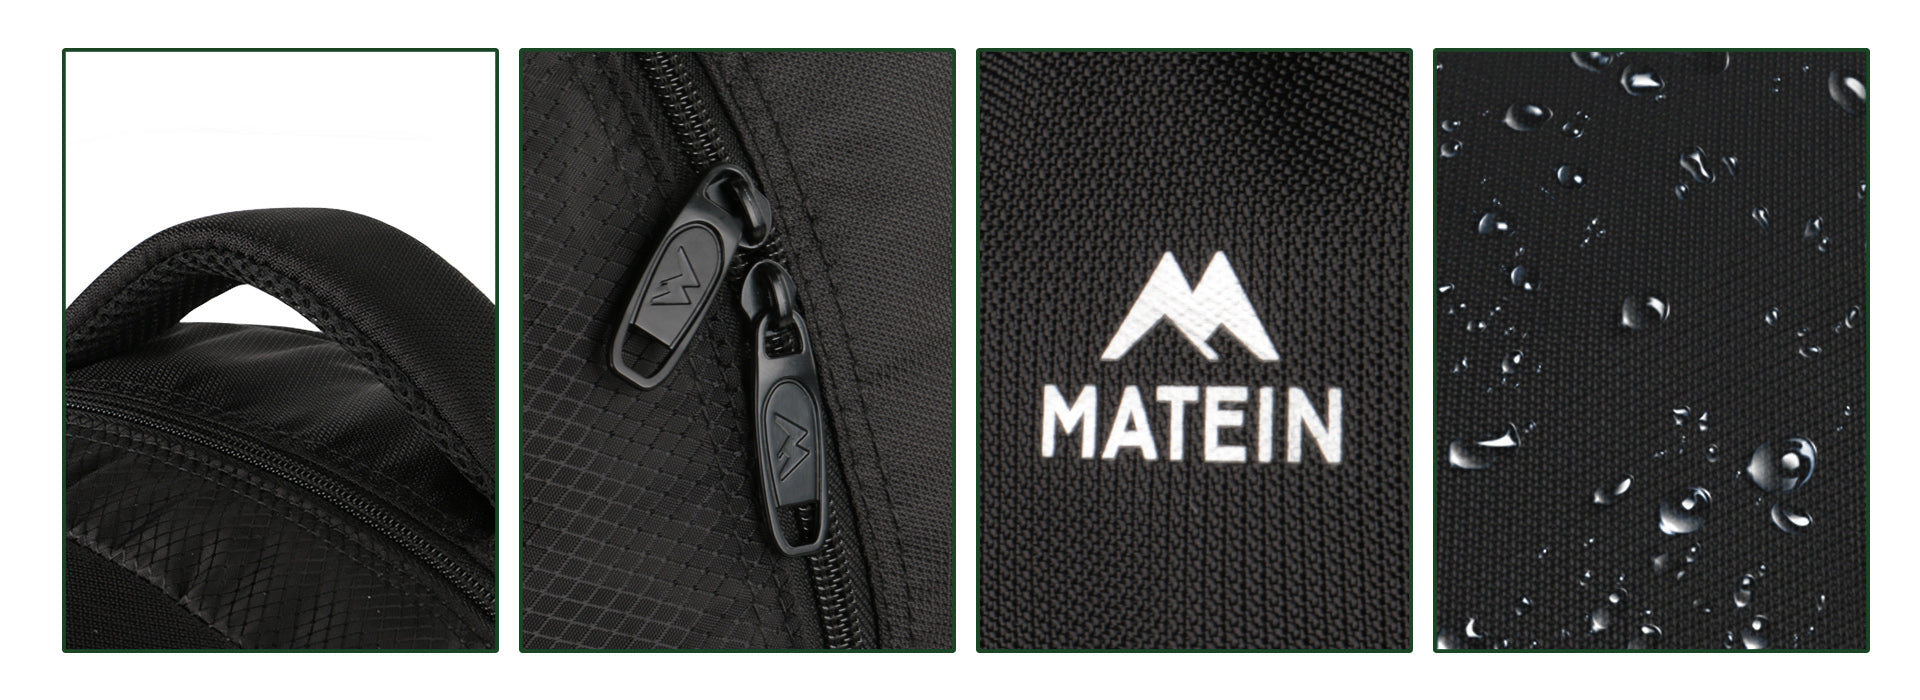 Matein student backpack 15.6 inche laptop